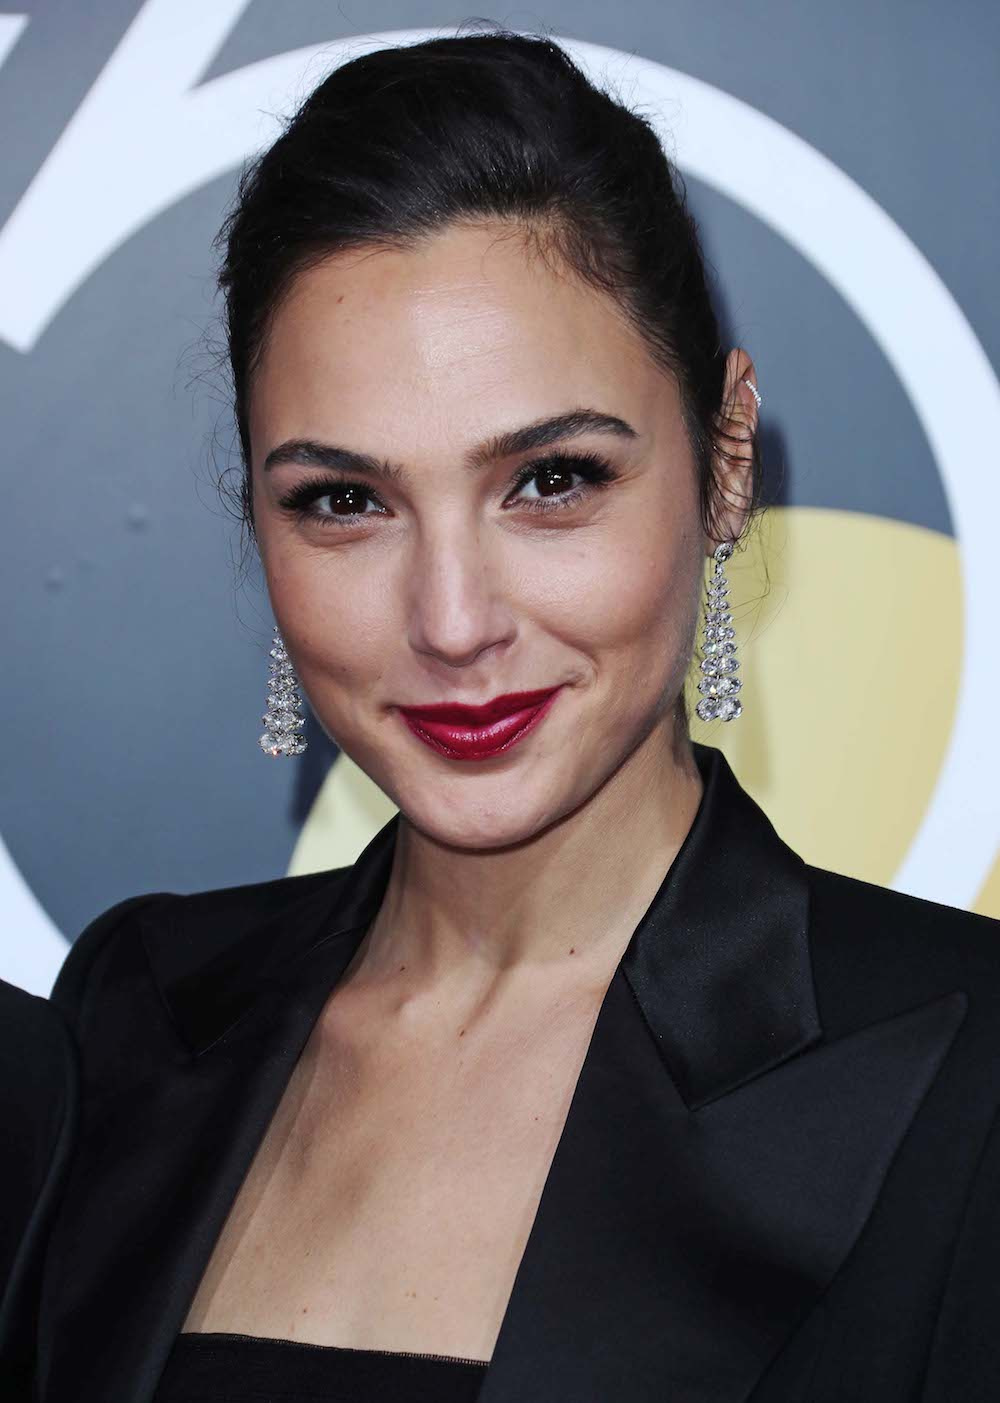 You Can Buy Gal Gadot's Exact Golden Globes Lipstick For Just £7.50